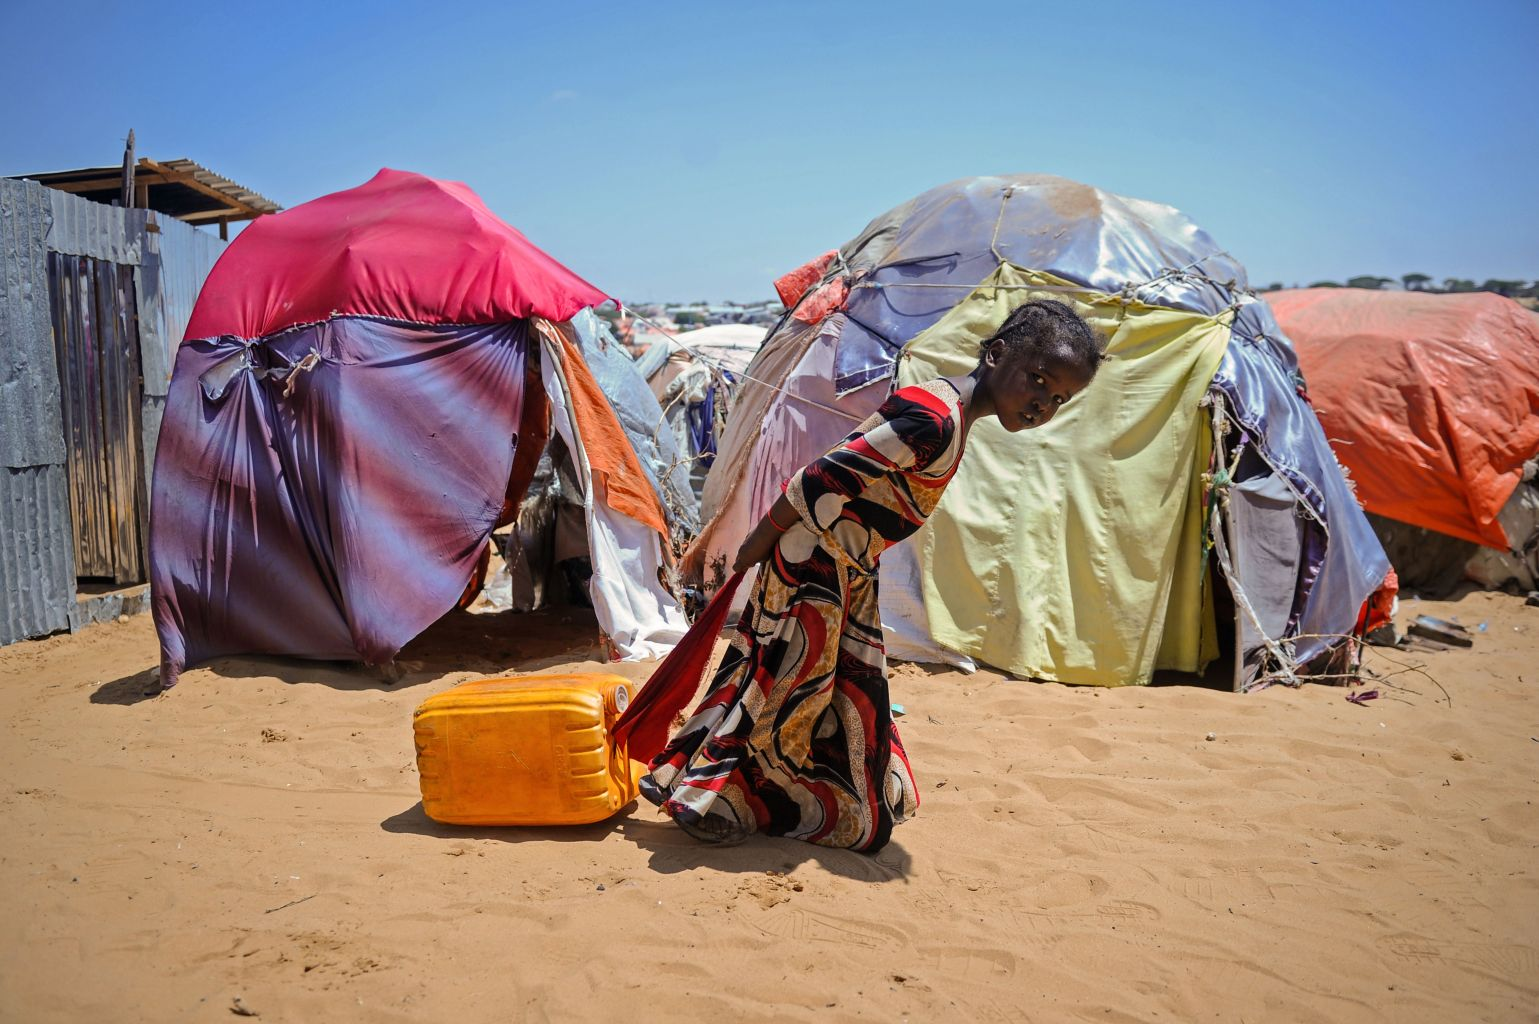 """TOPSHOT - A Somali girl drags a jerrycan filled with water from a well at the Tawakal IDP camp on the outskirts of Mogadishu, Somalia, on March, 21, 2018. World Water Day, on March 22, 2018, calls attention on the importance of water, with this year's theme """"Nature for Water""""  exploring nature-based solutions to the water challenges we face in the 21st century. / AFP PHOTO / Mohamed ABDIWAHAB        (Photo credit should read MOHAMED ABDIWAHAB/AFP/Getty Images)"""